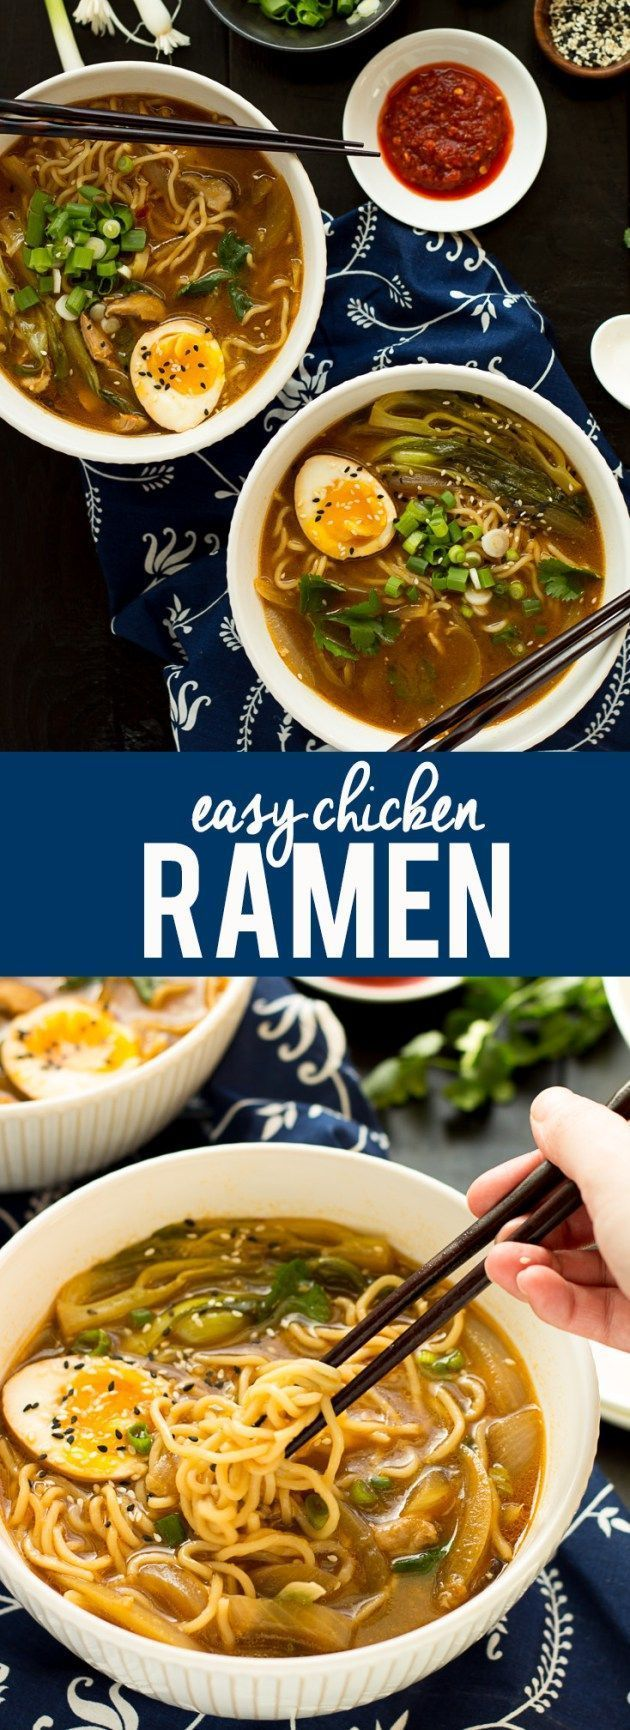 This Easy Chicken Ramen can be made at home in about 30 minutes! A flavorful broth with chicken and noodles, and dont forget the ramen egg!